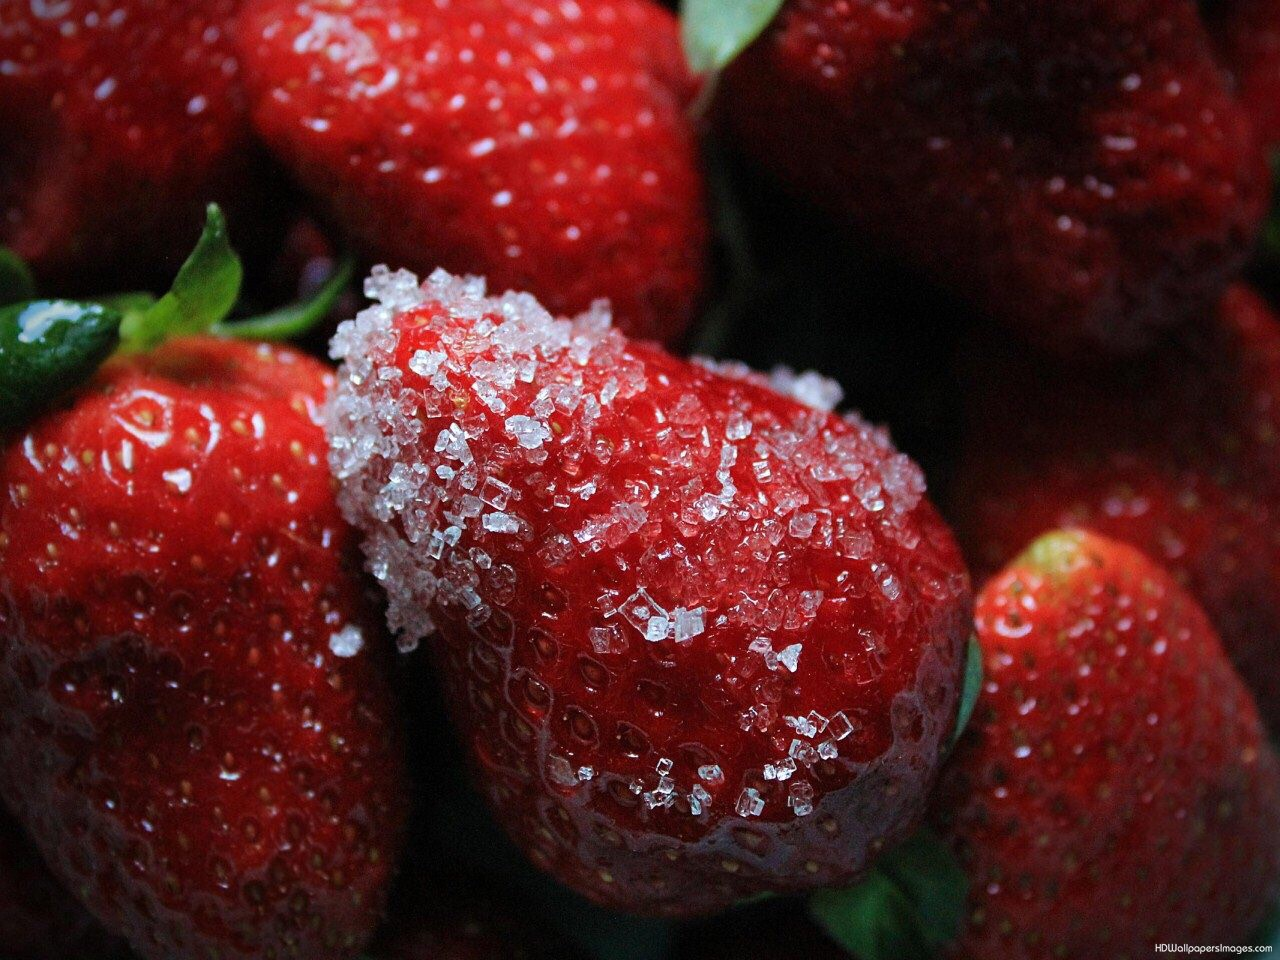 Yes the original strawberries and sugar, the sugar pull out the natural sweetness of the strawberry. Of course if you're wanting to loose weight you can use and artificial sweetener such as sweet-n-low